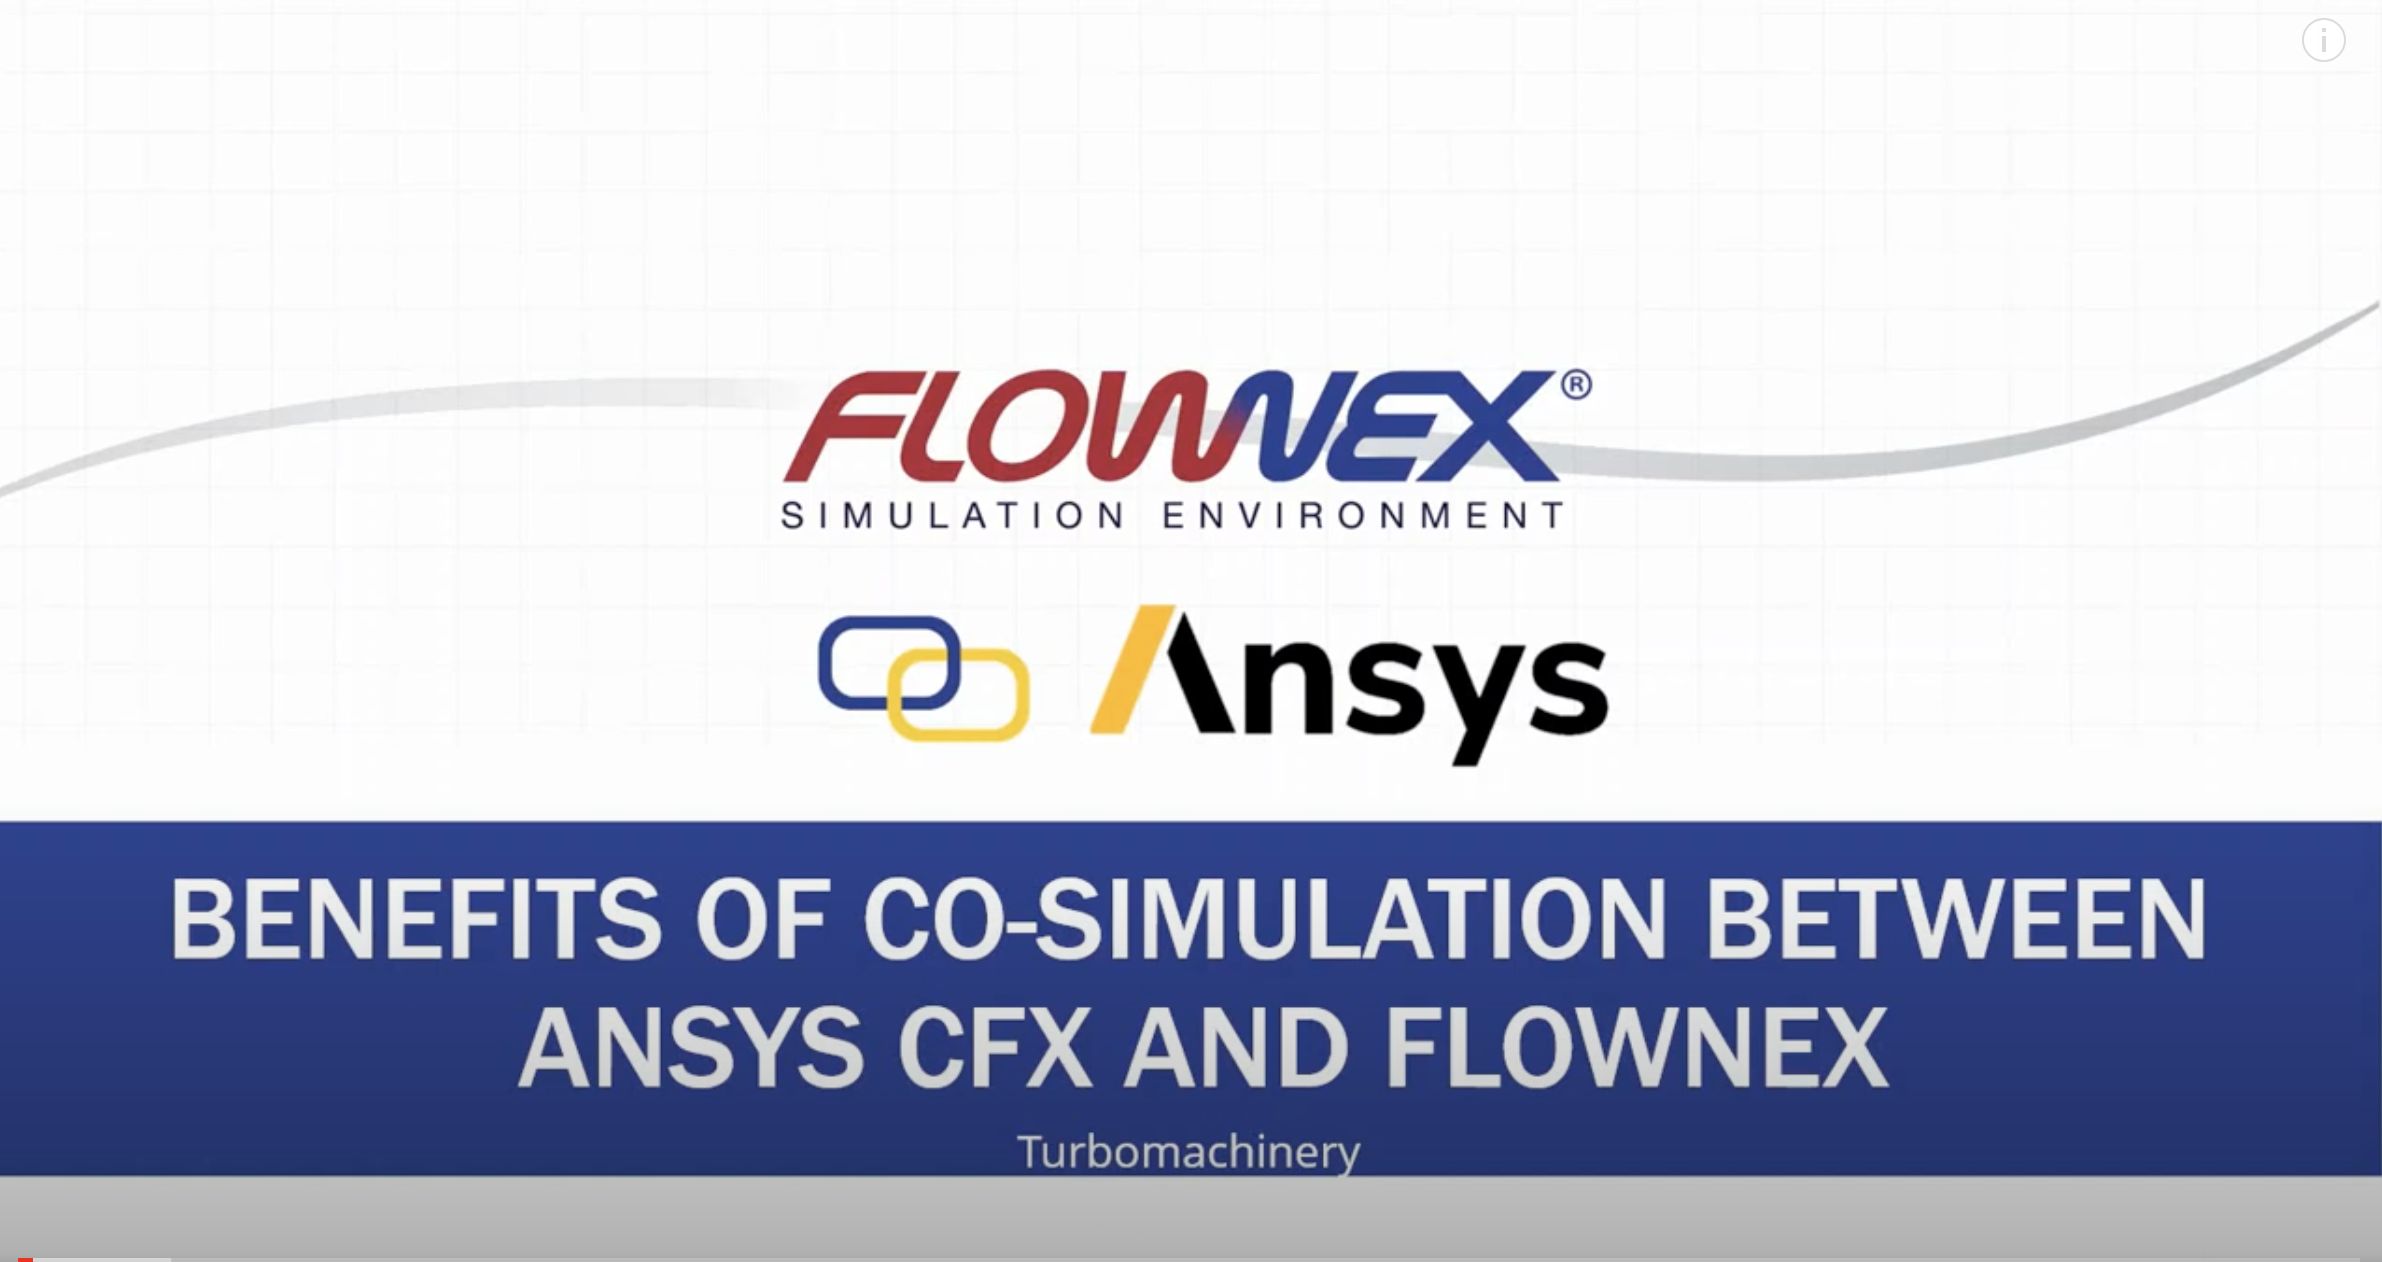 BENEFITS OF CO-SIMULATION BETWEEN ANSYS CFX AND FLOWNEX